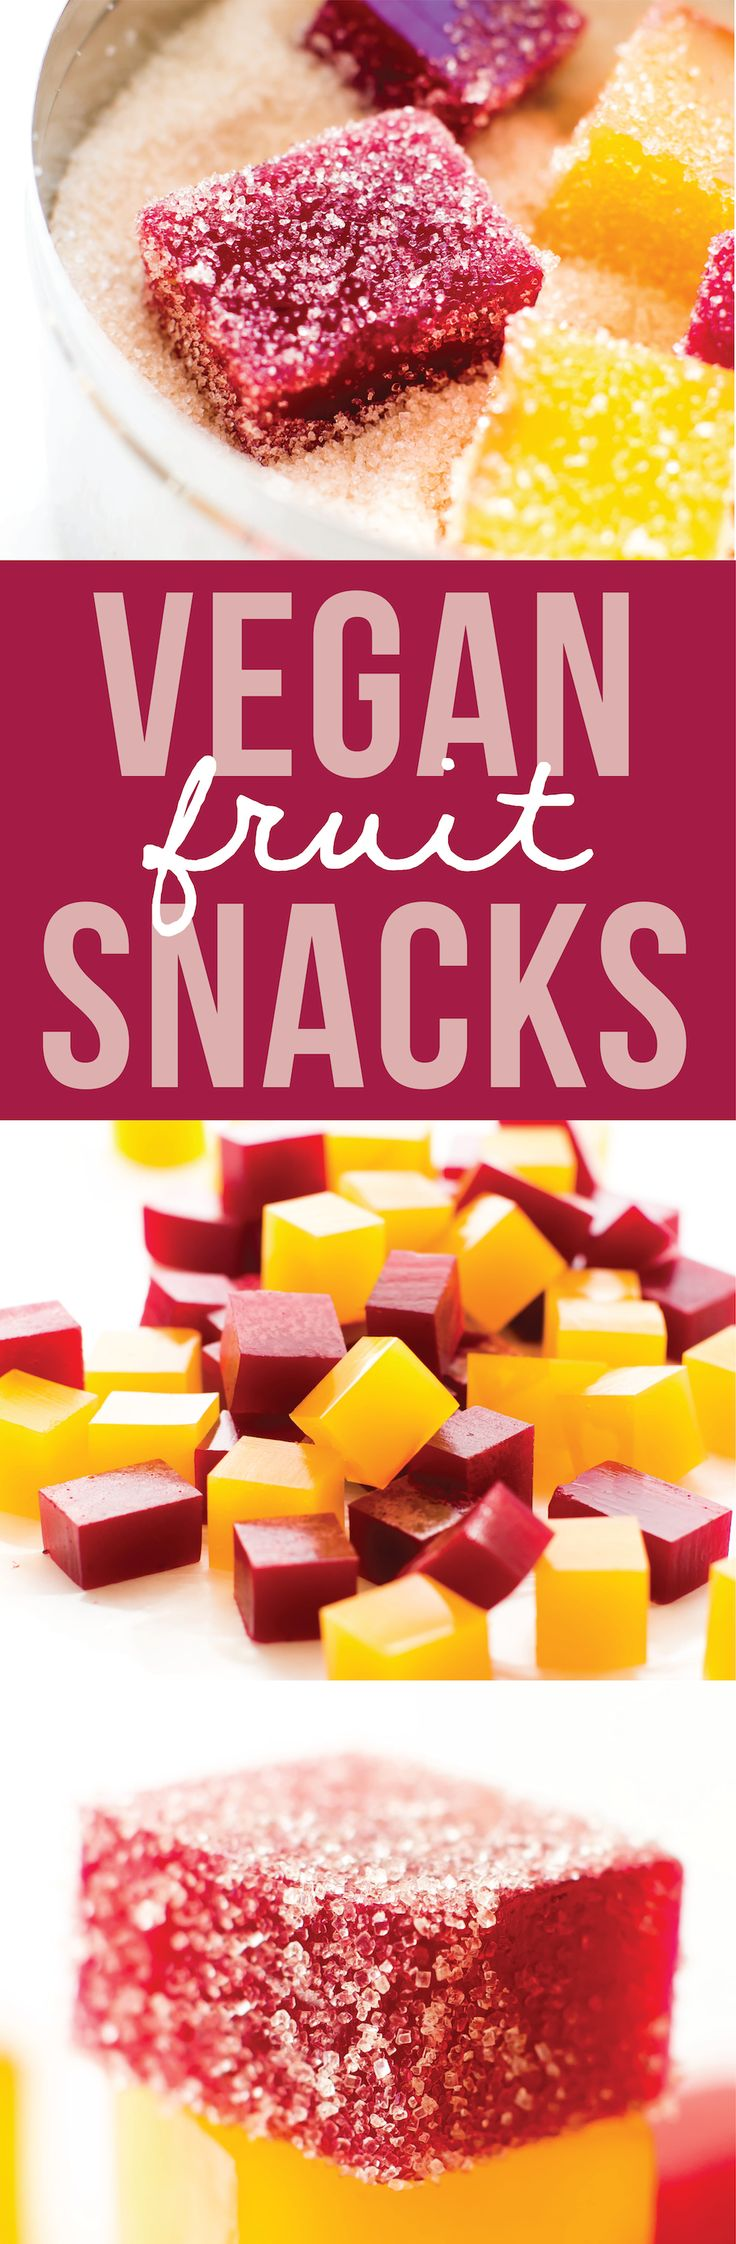 These homemade vegan fruit snacks are a fun healthy gummy treat for kids or adults that you can make in any fruity flavor or shape with just 3 ingredients!